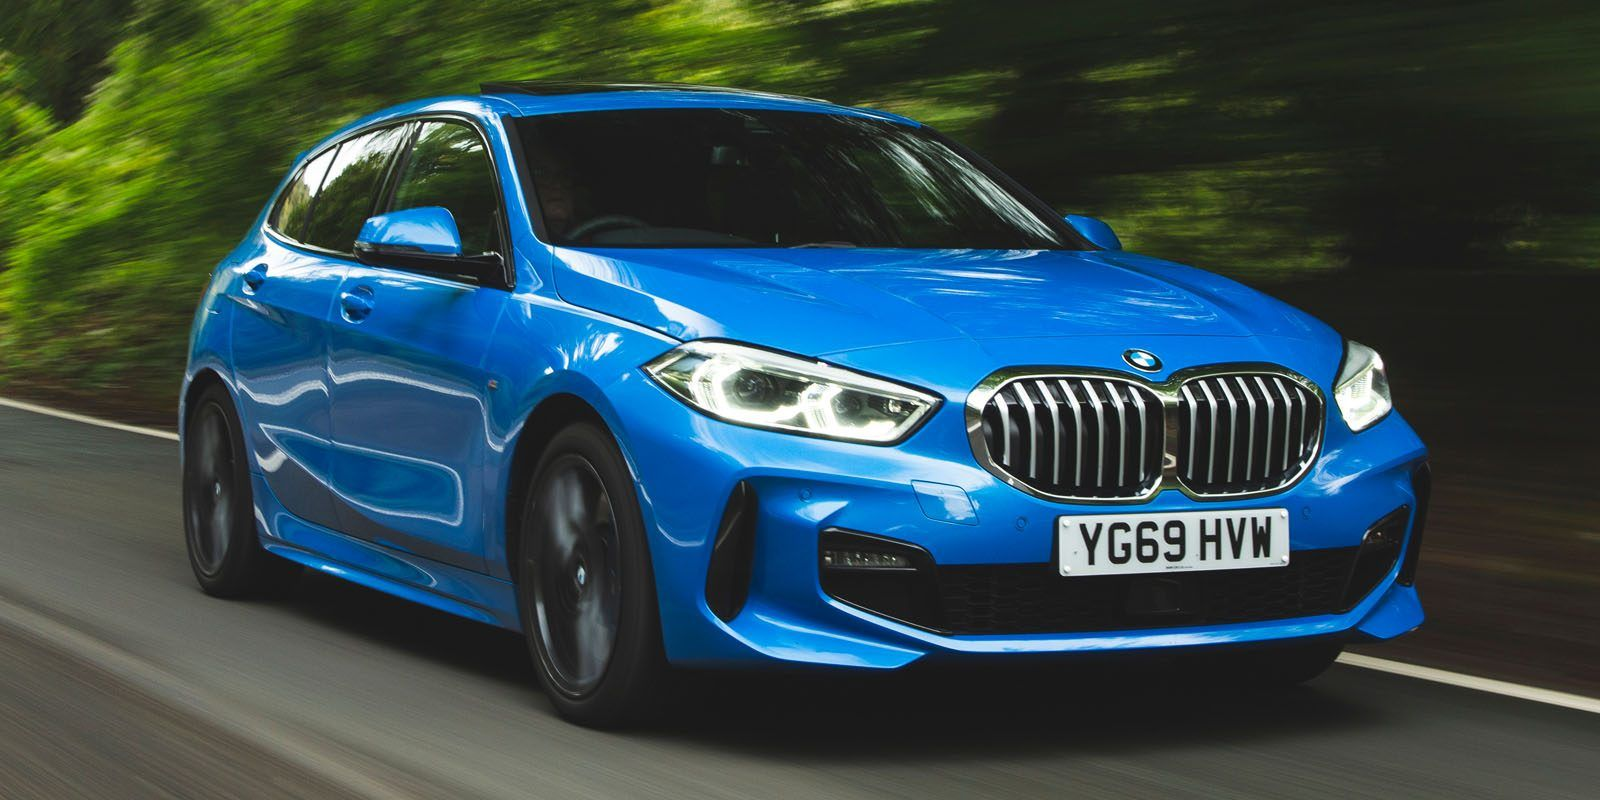 Here S What Makes The 1 Series The Best Bmw Hatchback Hotcars